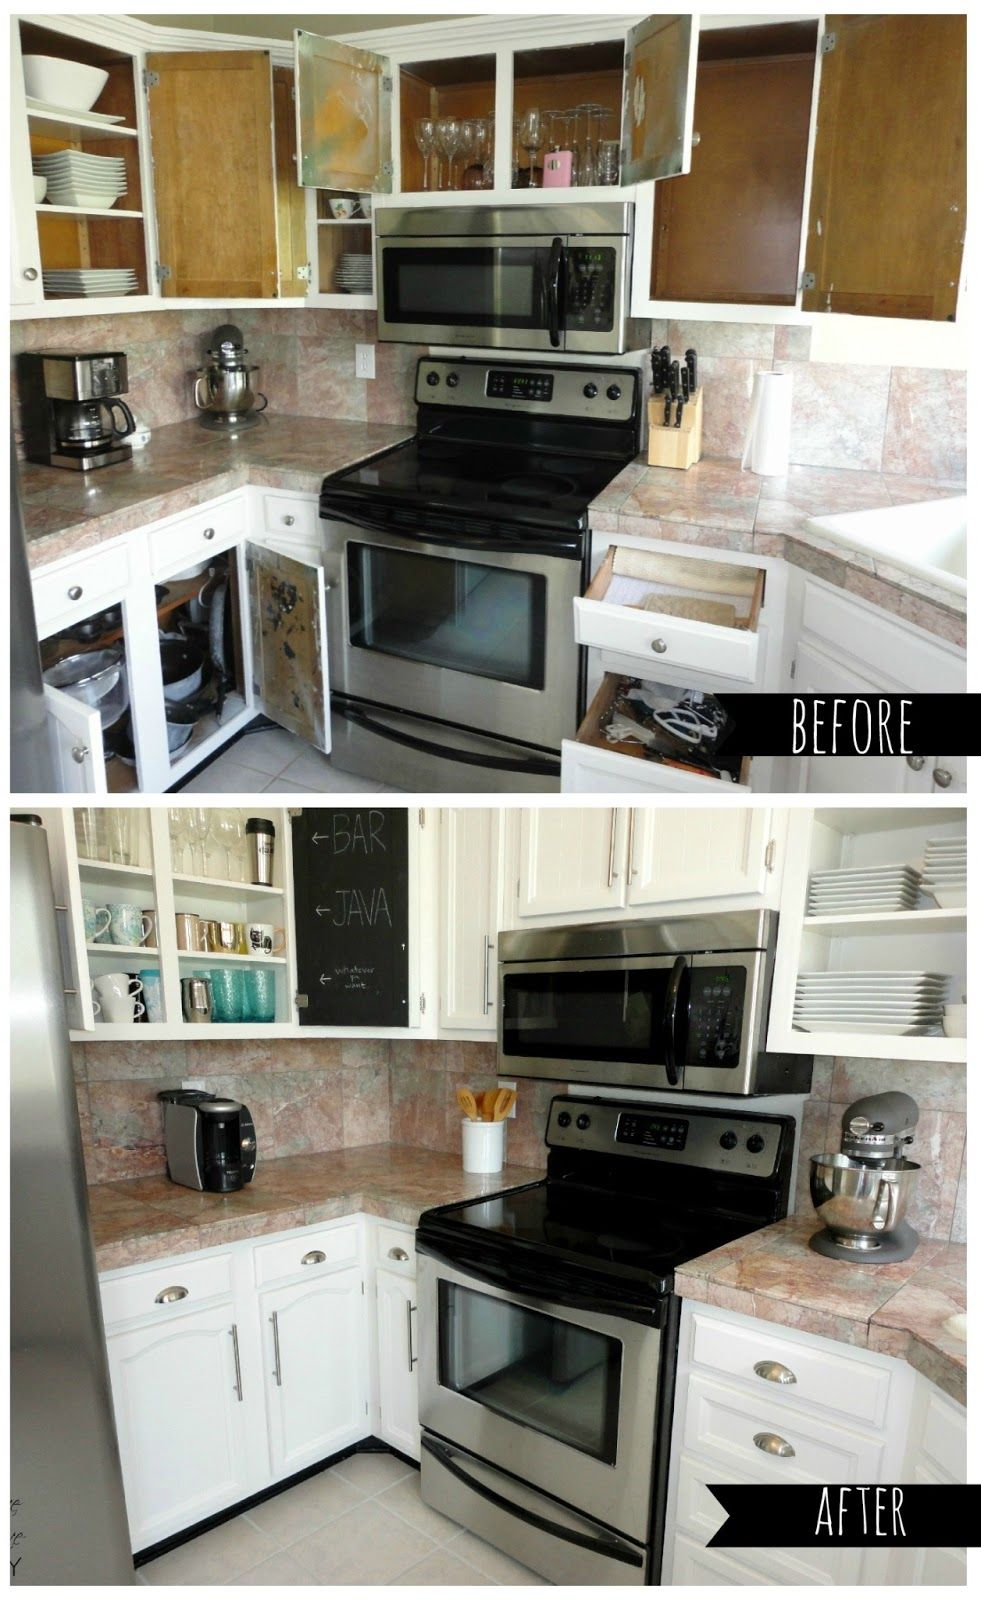 Paint The Inside Cabinets With Chalkboard Magnetic Paint Kitchen Renovation Painting Kitchen Cabinets Kitchen Remodel